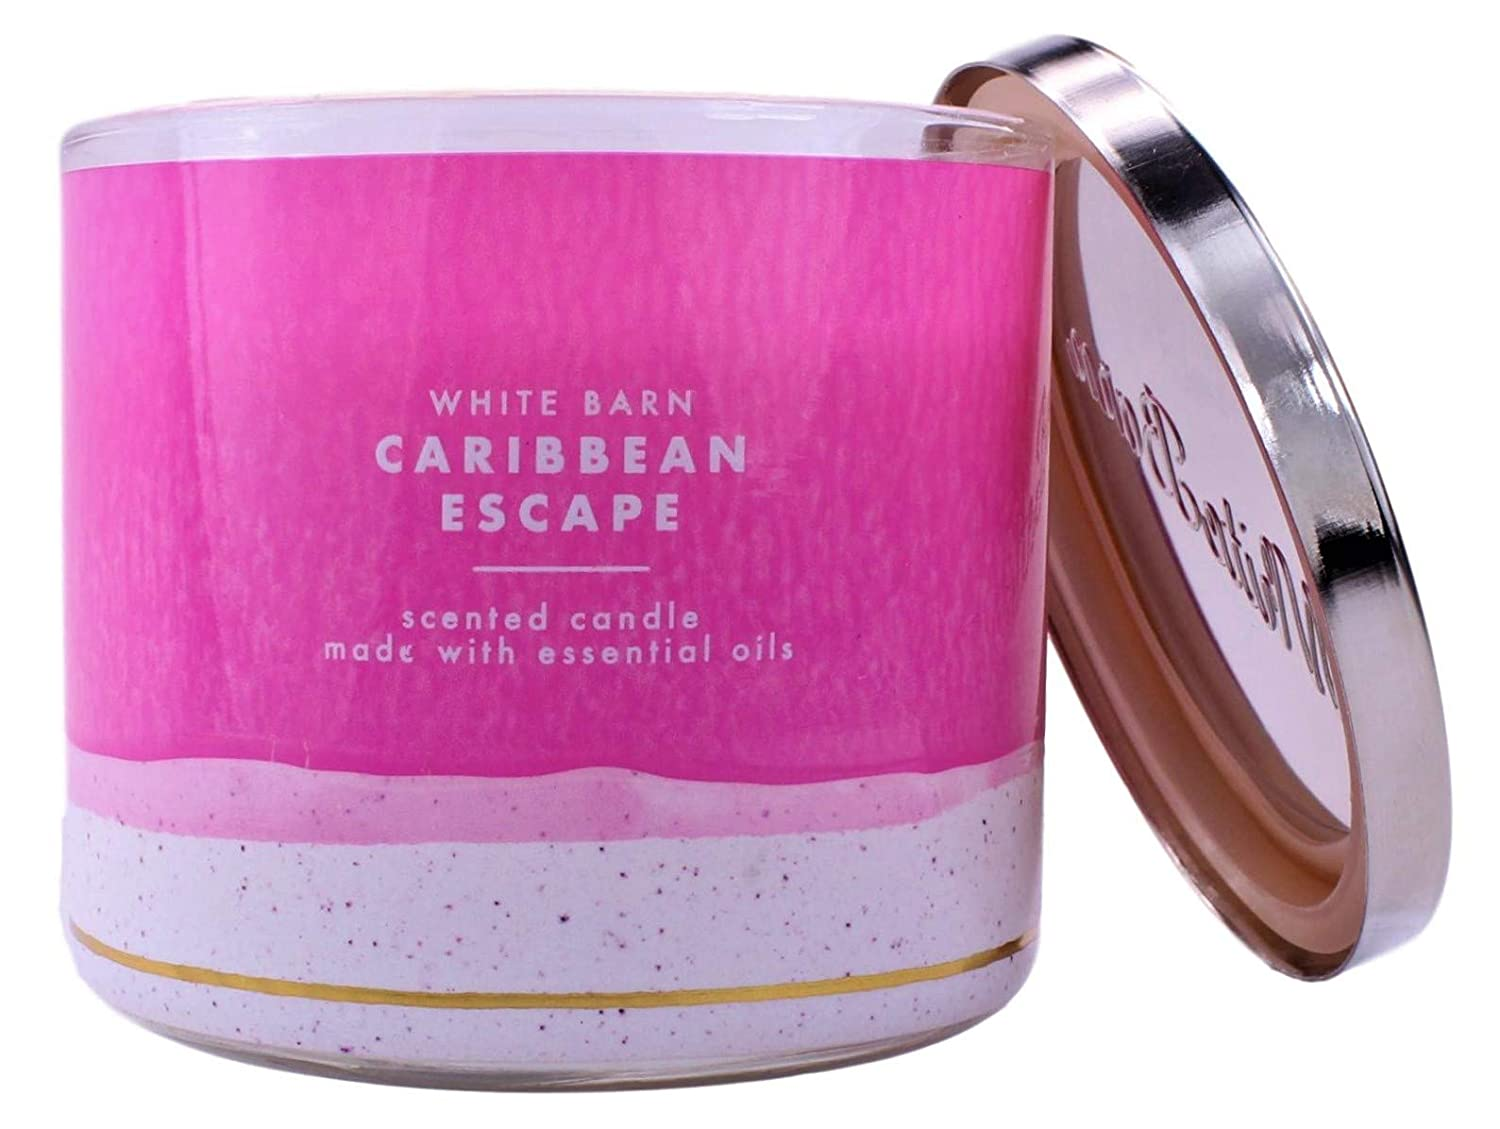 Bath Body Works White Barn Caribbean famous Scented New Shipping Free Shipping 3 Escape Wick Can